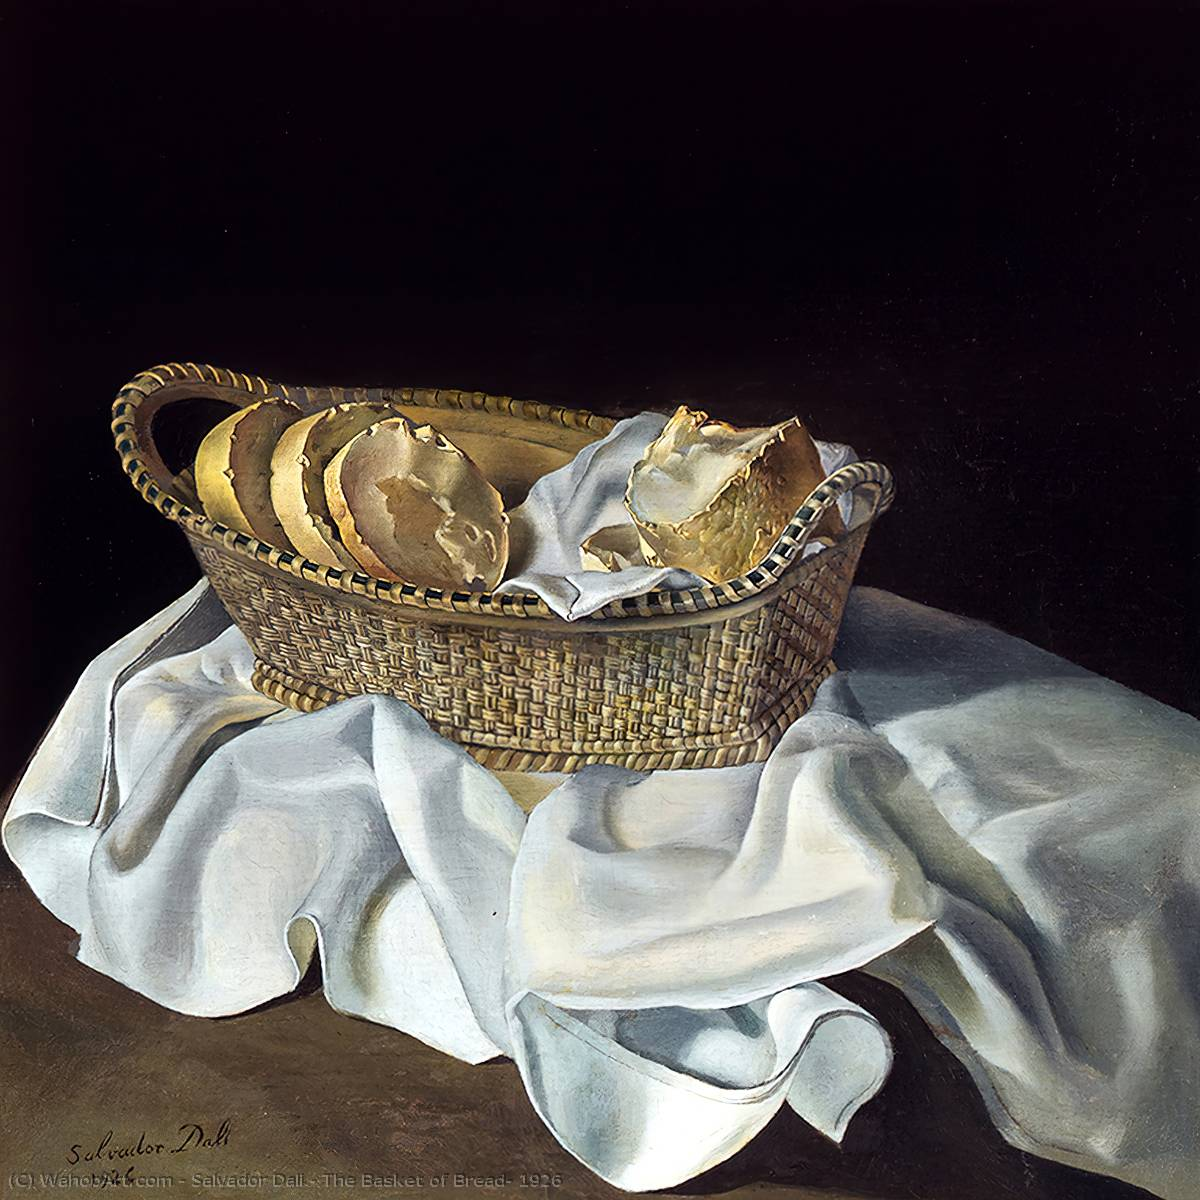 The Basket of Bread, 1926, Oil by Salvador Dali (1938-3183, Spain)